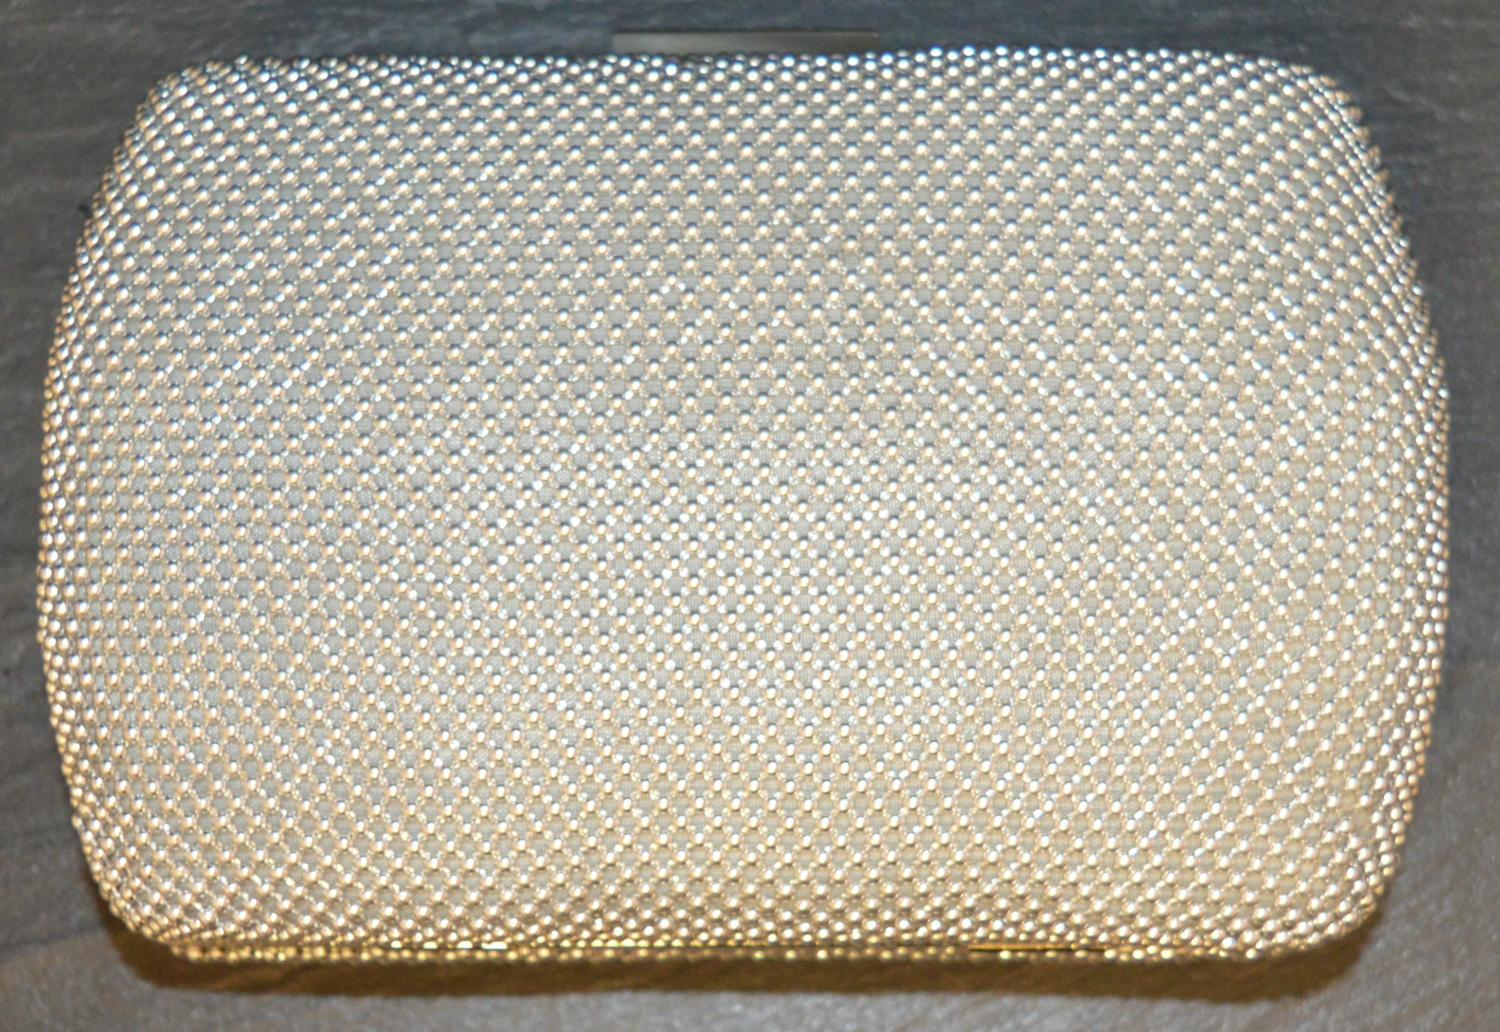 Mesh Style Clutch Bag